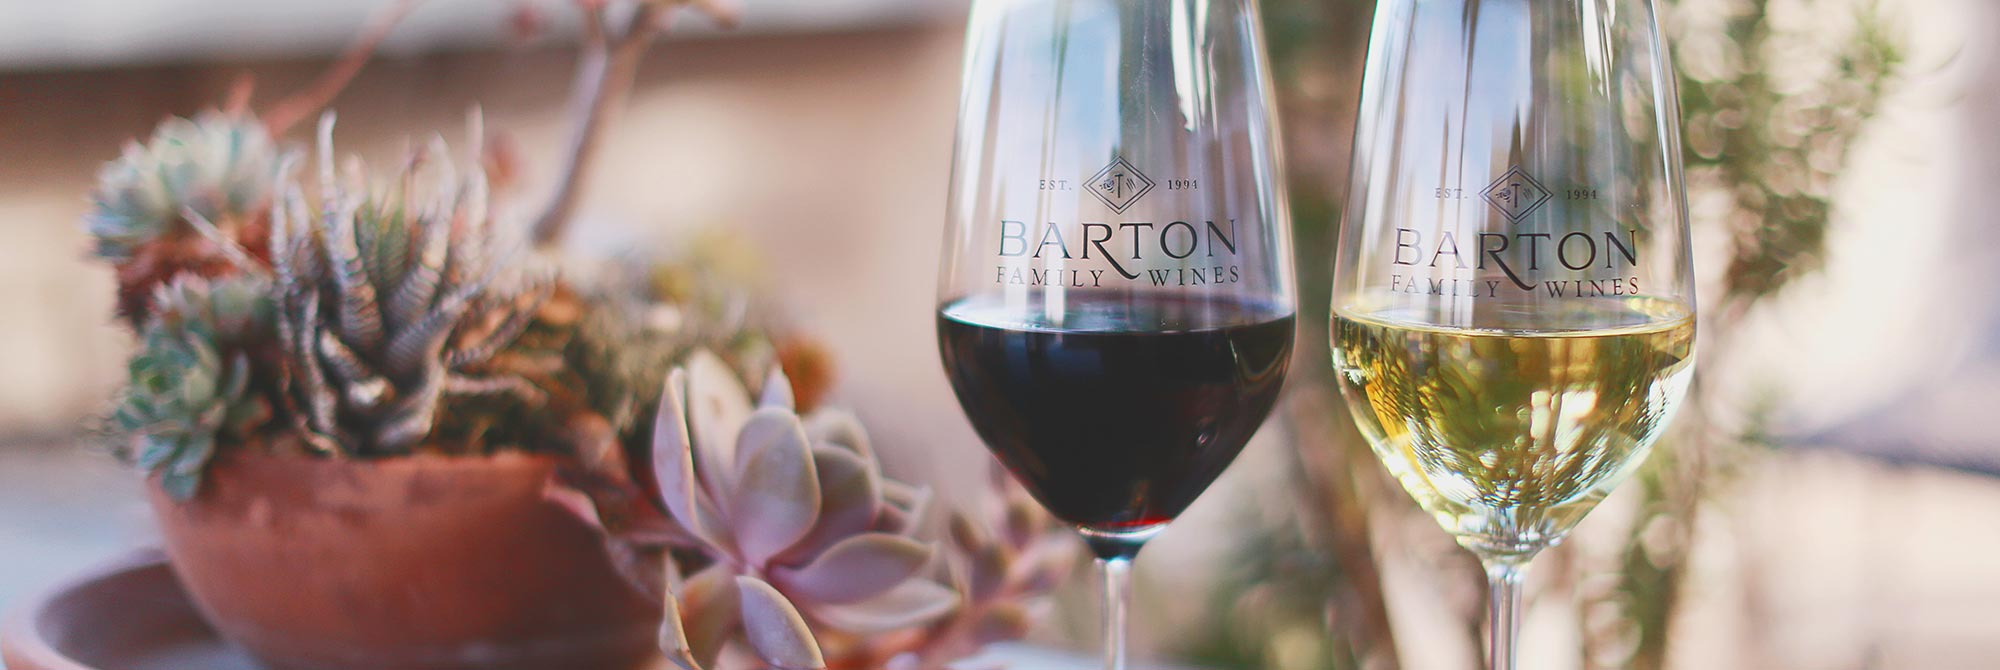 Barton Family Wines Photo